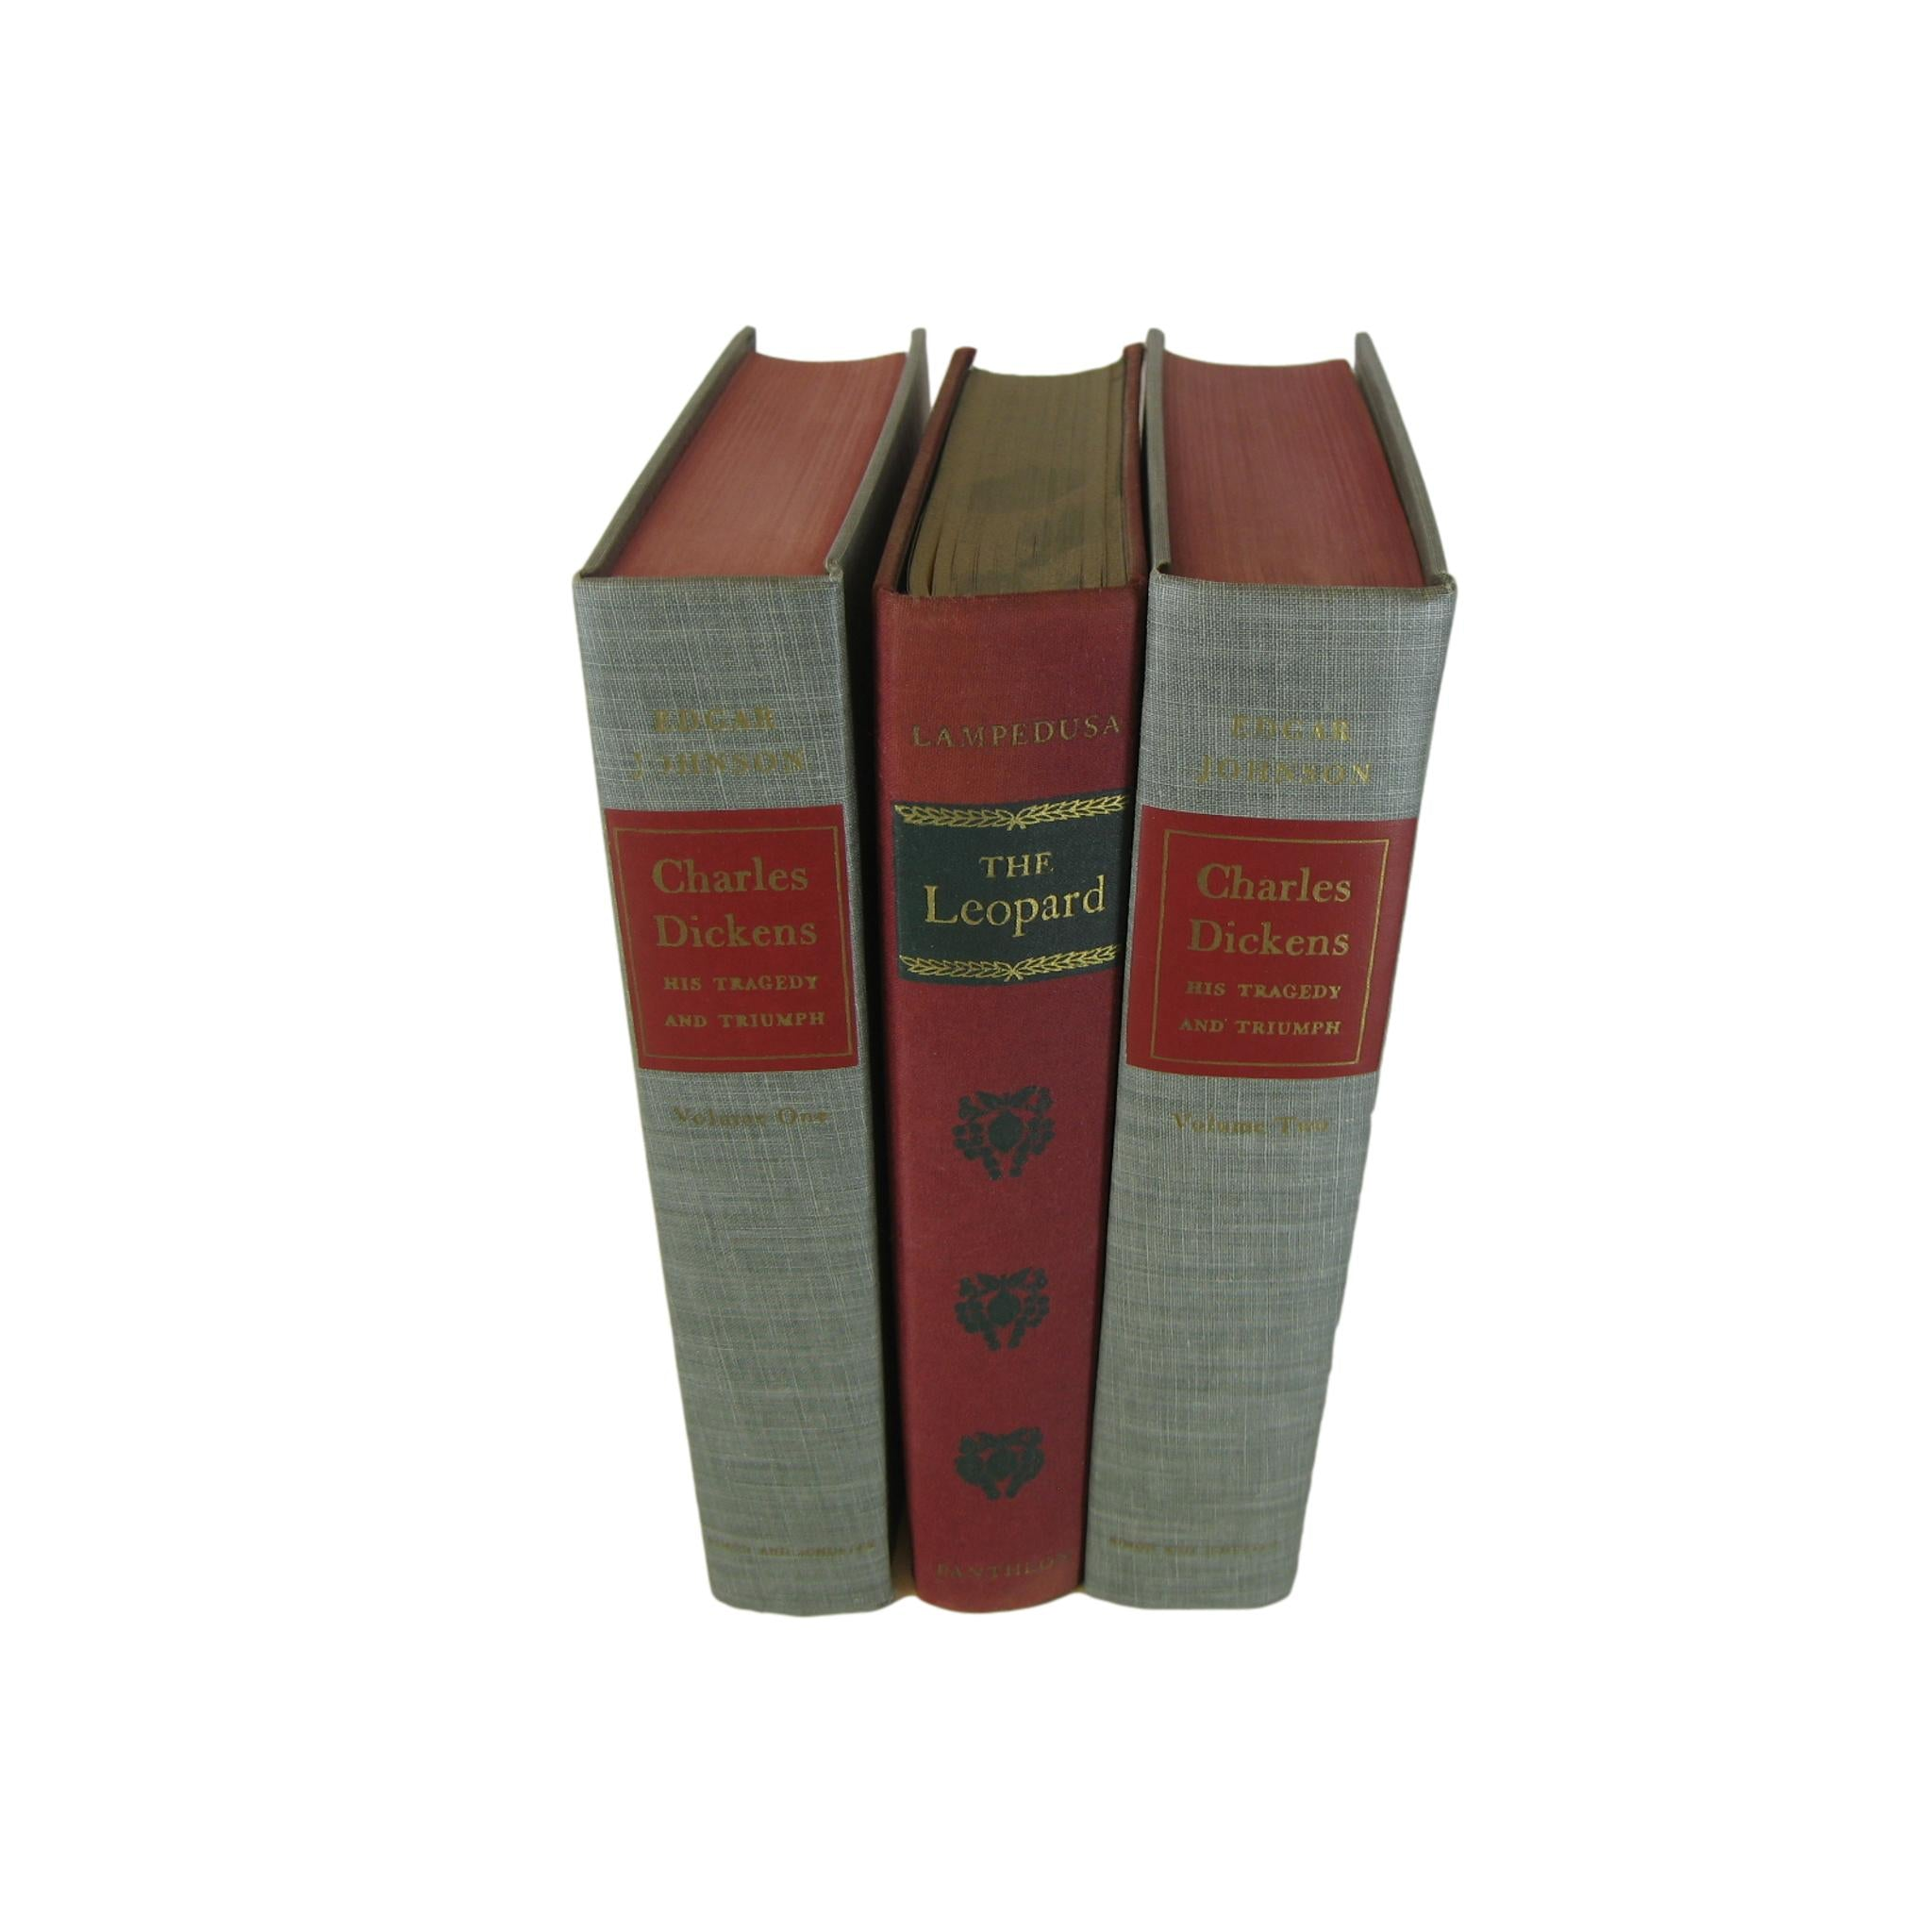 Decorative Books Stack including Charles Dickens, S/3 - Decades of Vintage